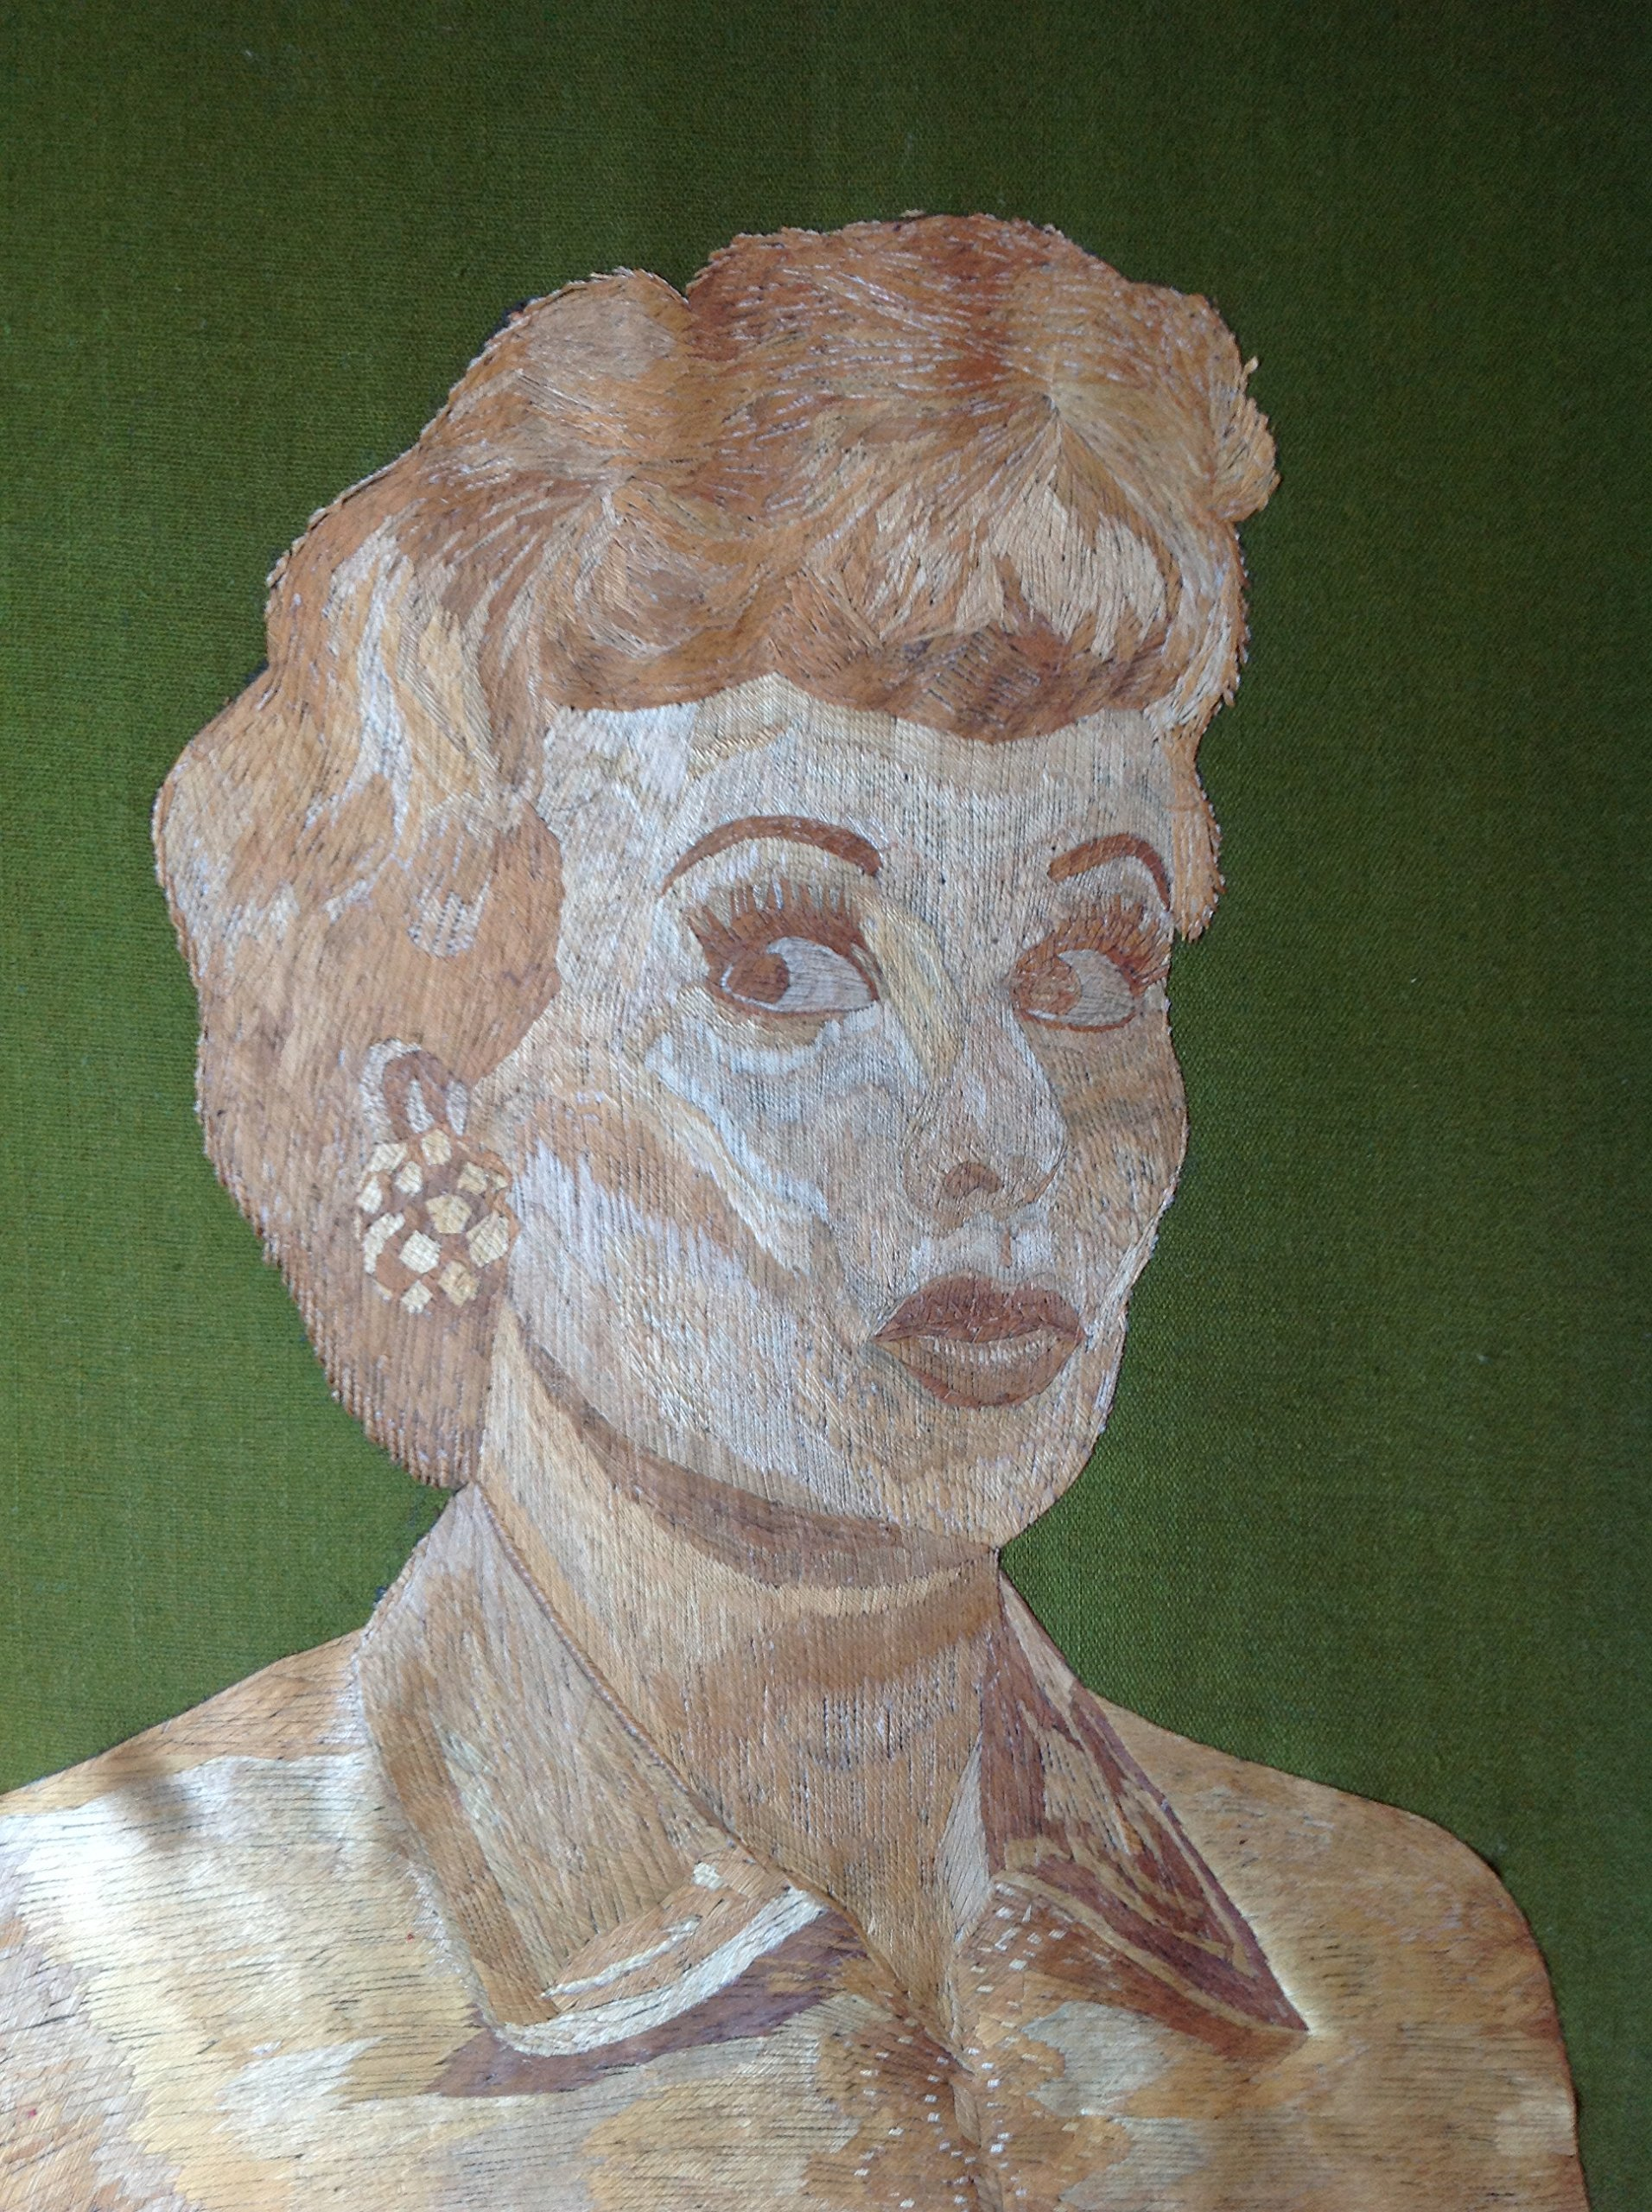 Lucile Ball ''I LOVE LUCY'' fame. Portrait done with rice straw. Thousands of tiny pieces of rice straw used to make it No color paint or dye added to the natural color of rice leaves